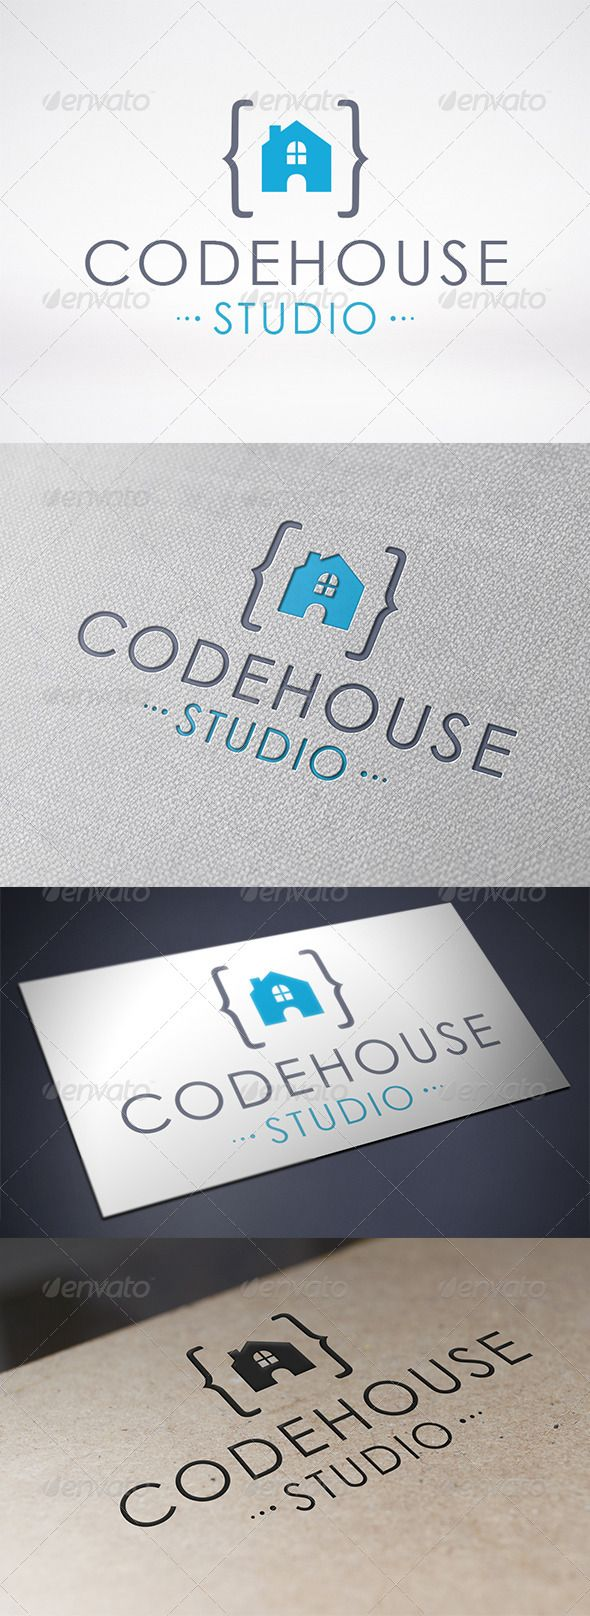 Code House Logo Design Template Vector #logotype Download it here:  http://graphicriver.net/item/code-house-logo-template/6524543?s_rank=672?ref=nexion